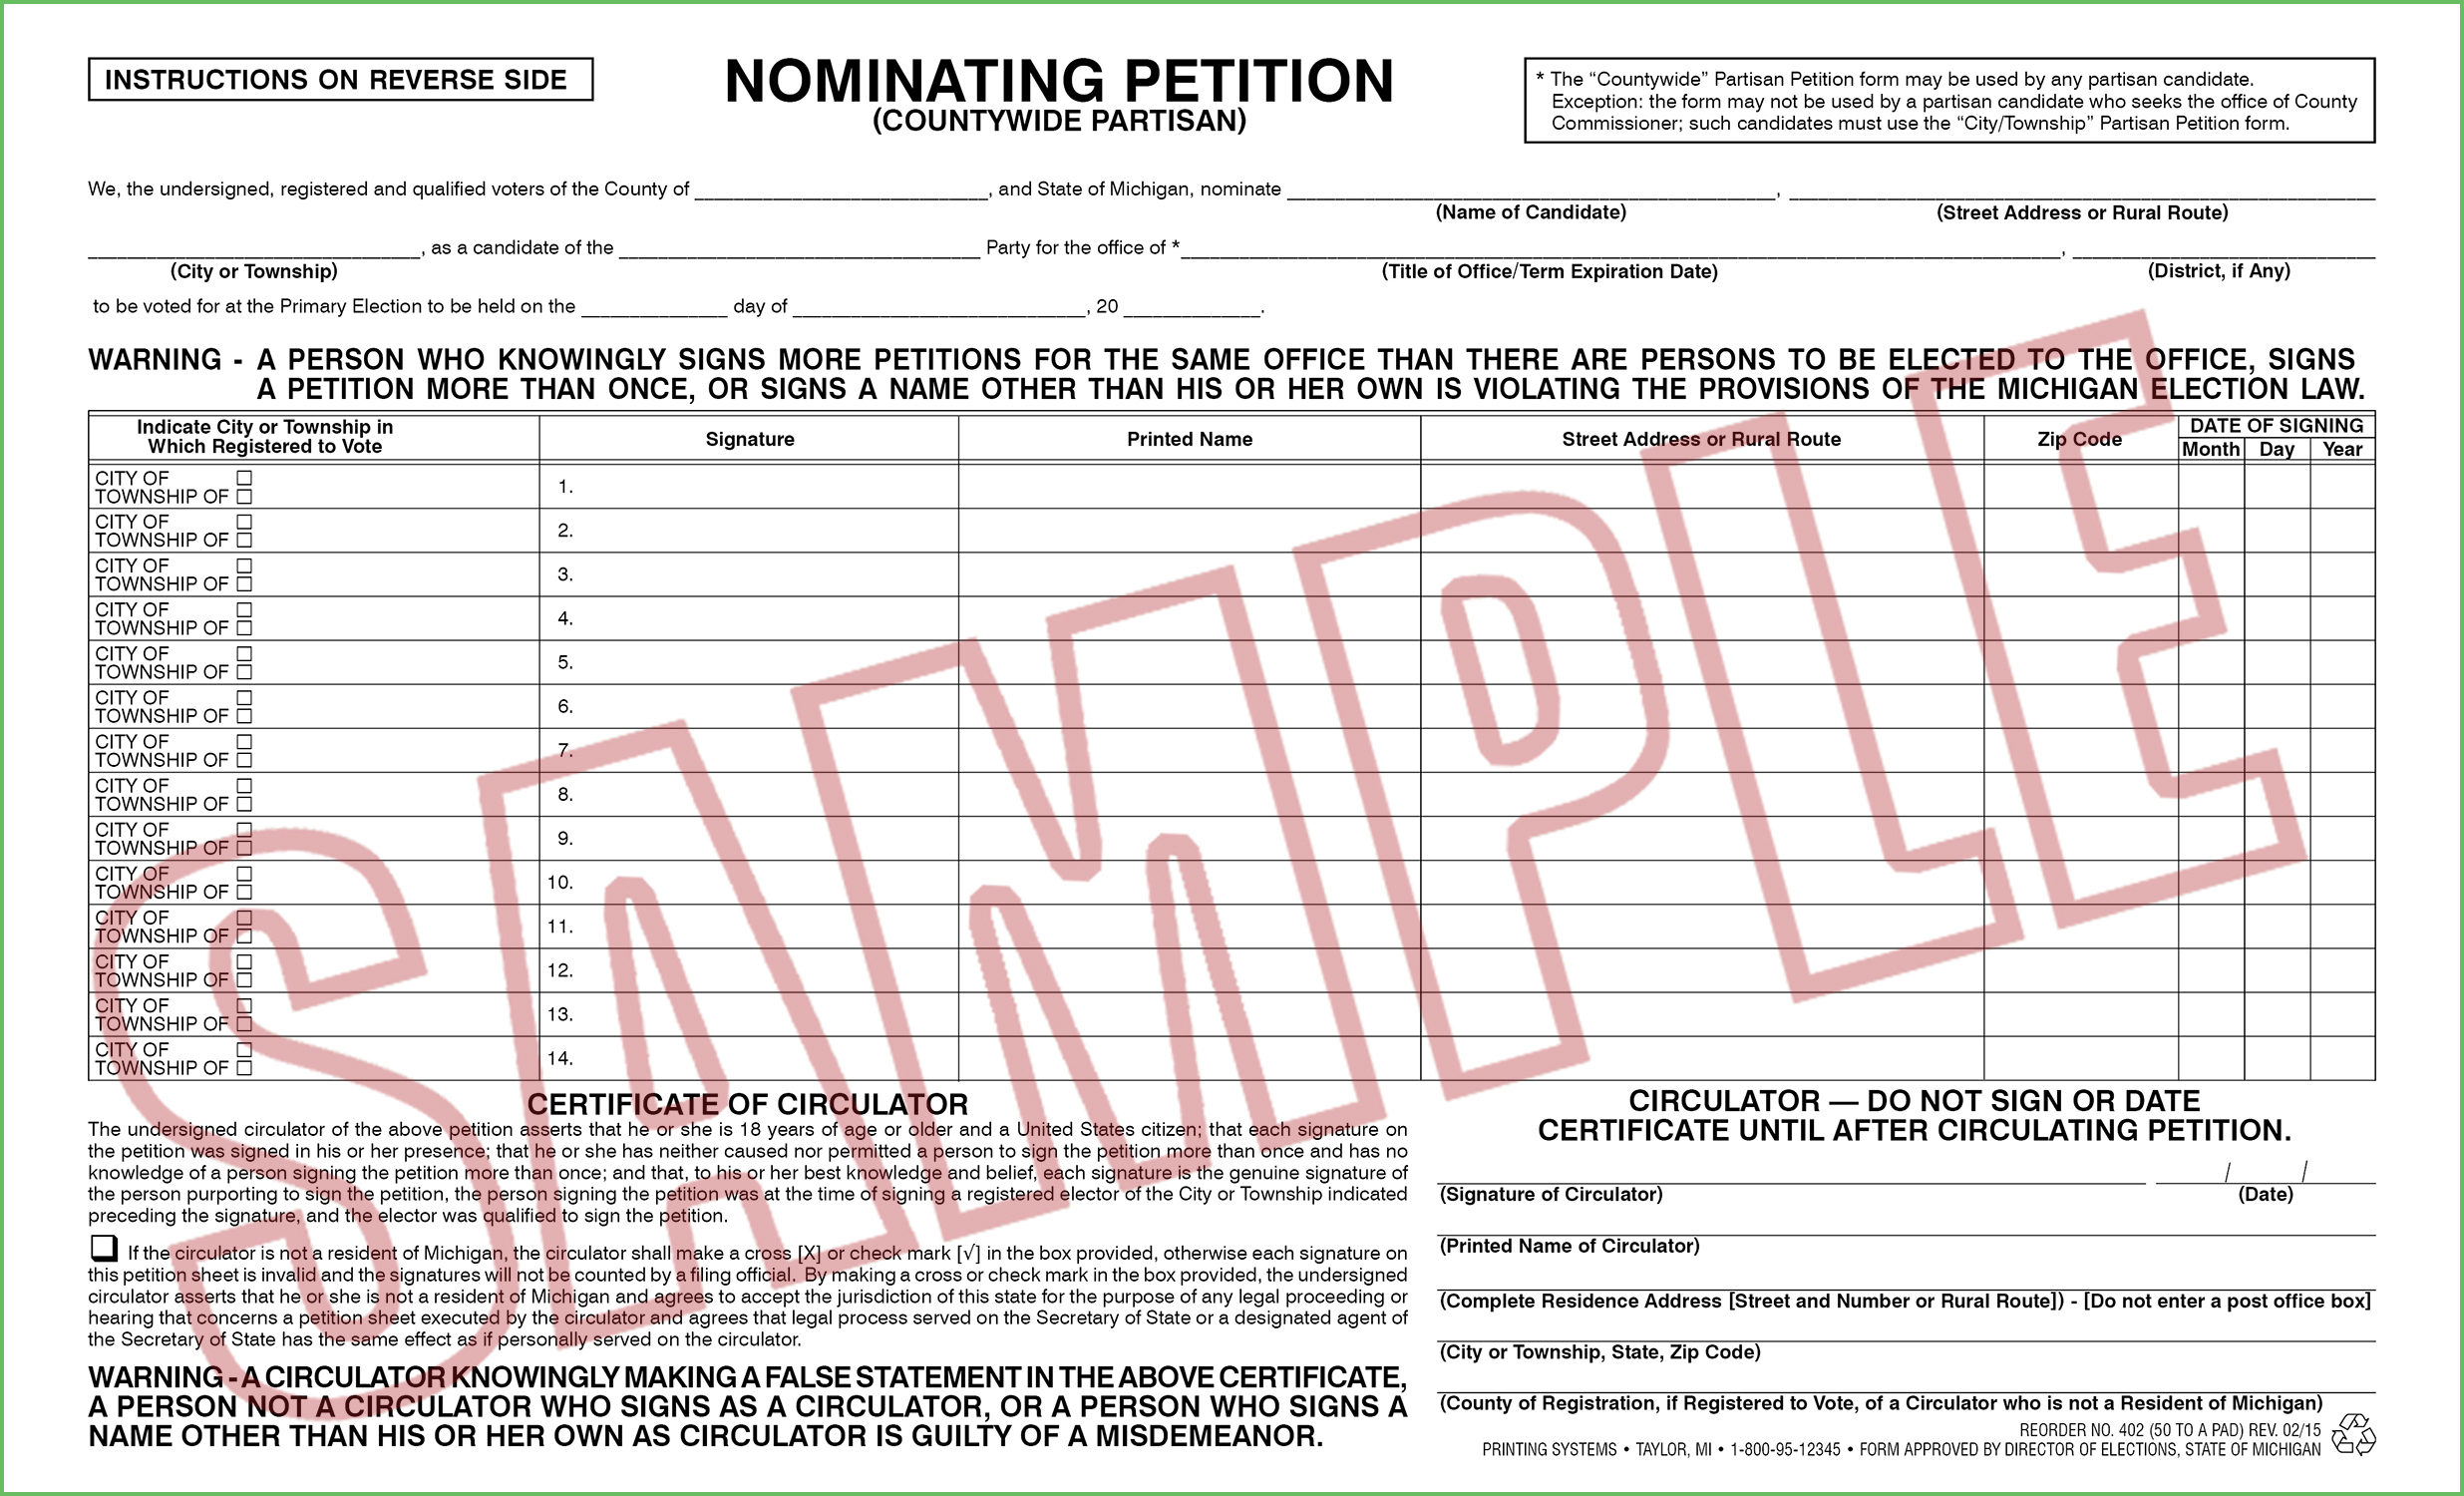 402 Nominating Petition (Countywide) Partisan (50 per pad) Rev. 10/19